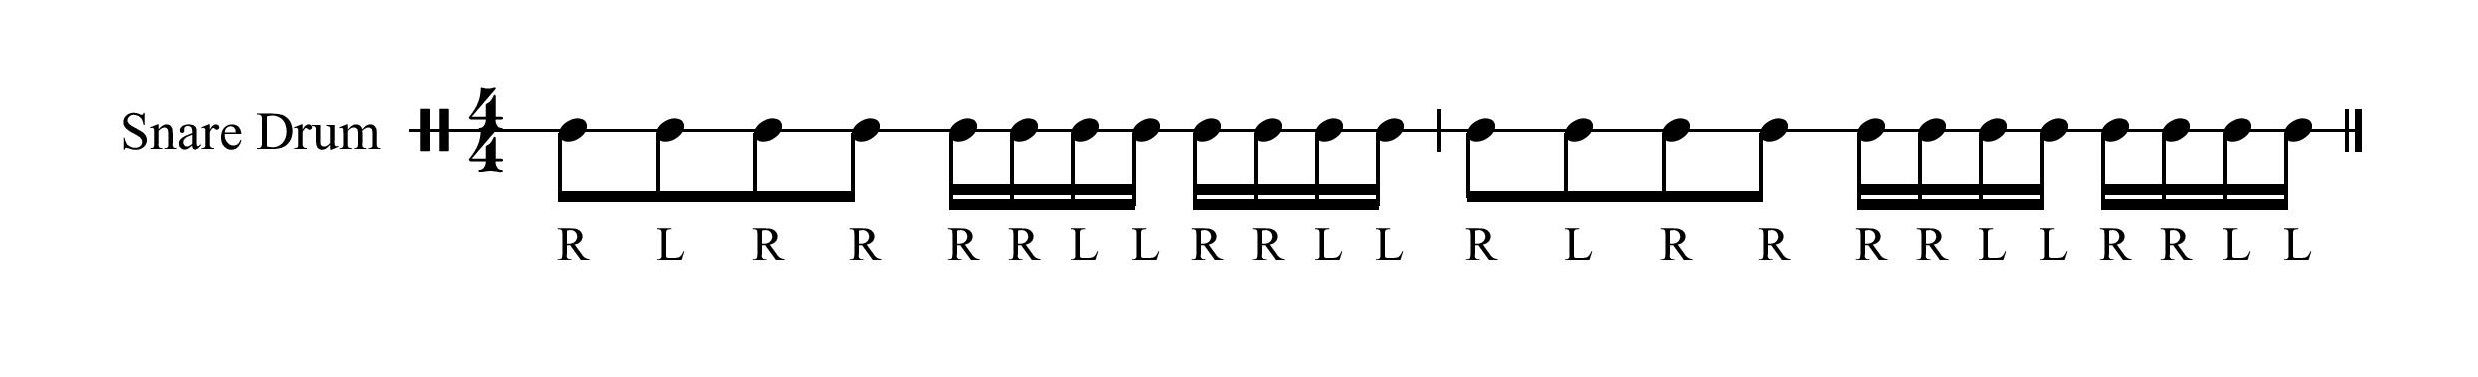 9 Stroke Drum Roll With Intro Paradiddle